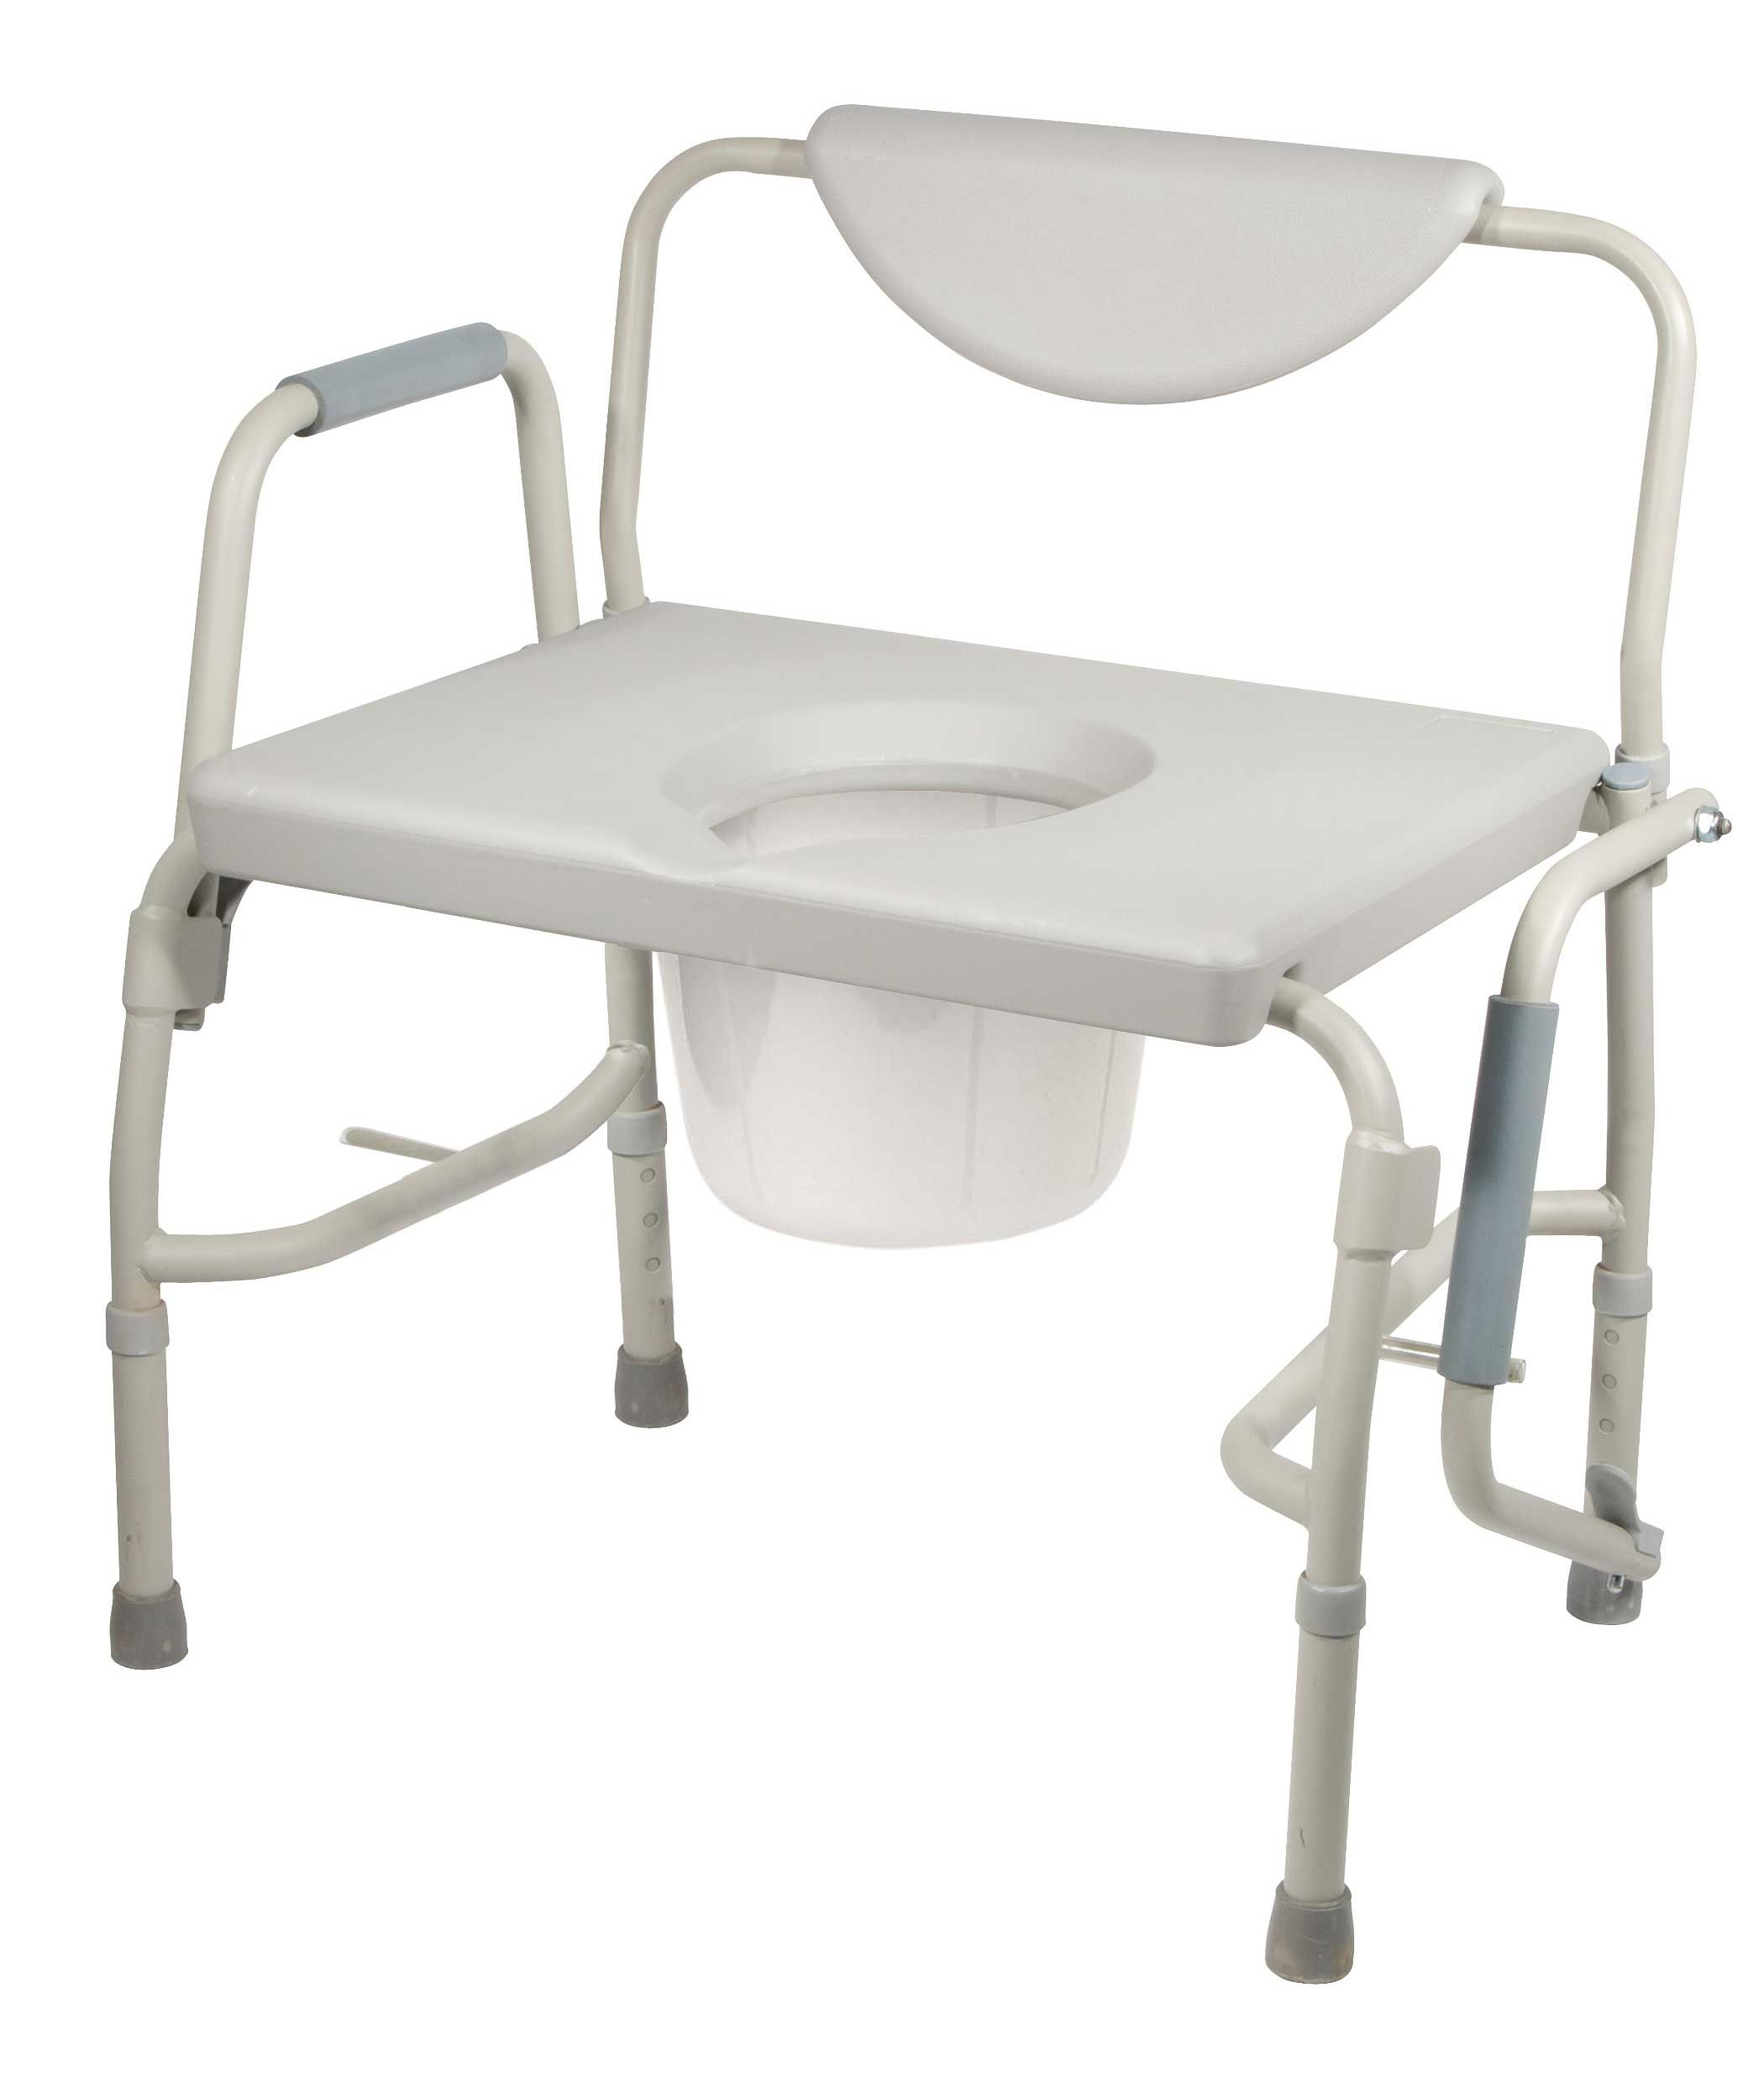 White Oversized Bedside Commode Chair With Bariatric Drop Arm